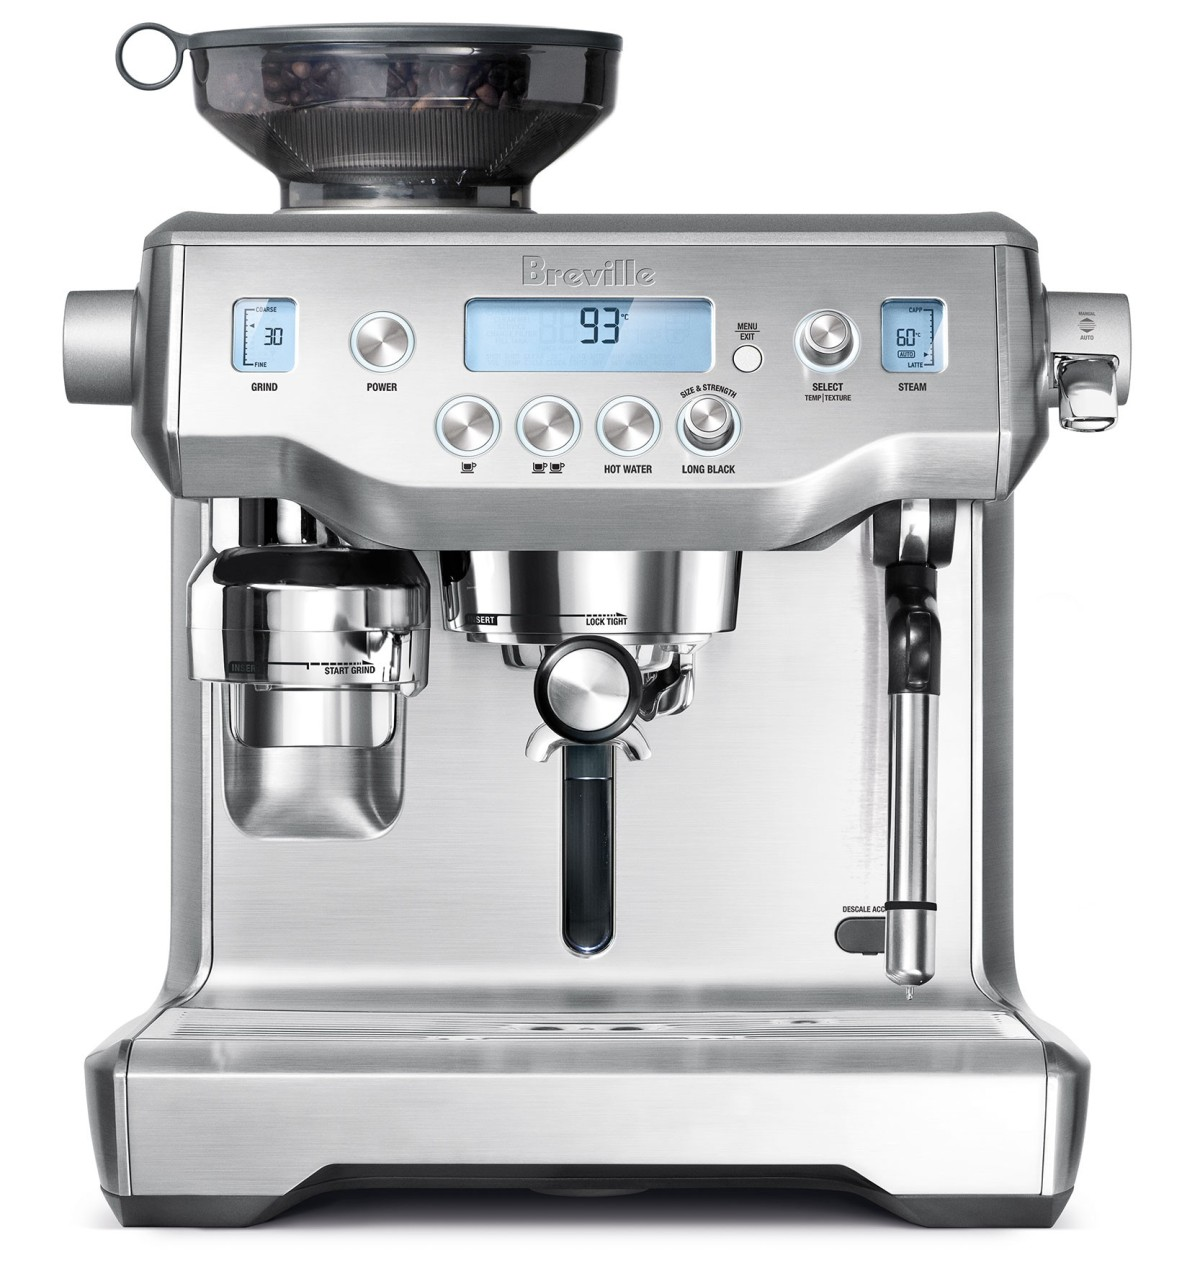 Breville Oracle Coffee Maker Highlights